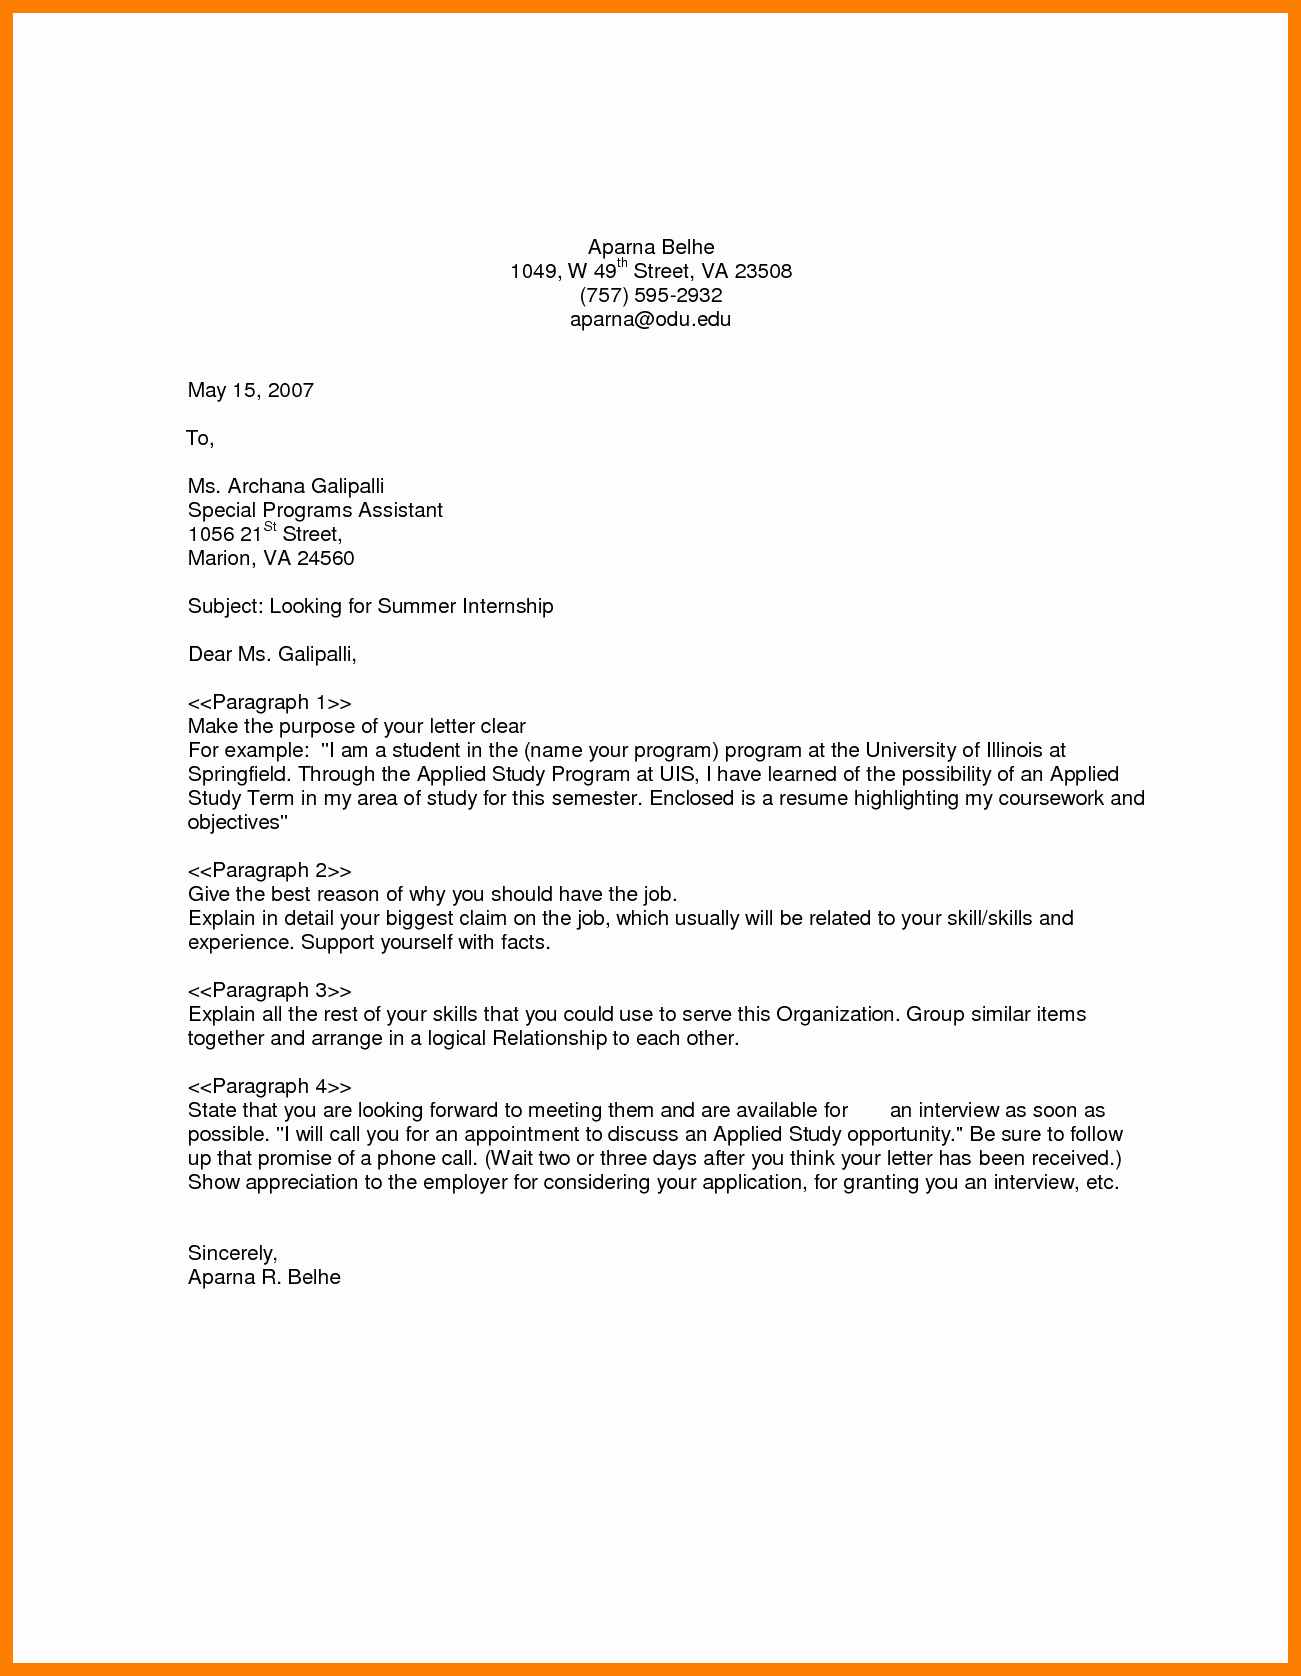 General Cover Letter Sample Best Of 9 10 Sample Cover Letters for Job Openings